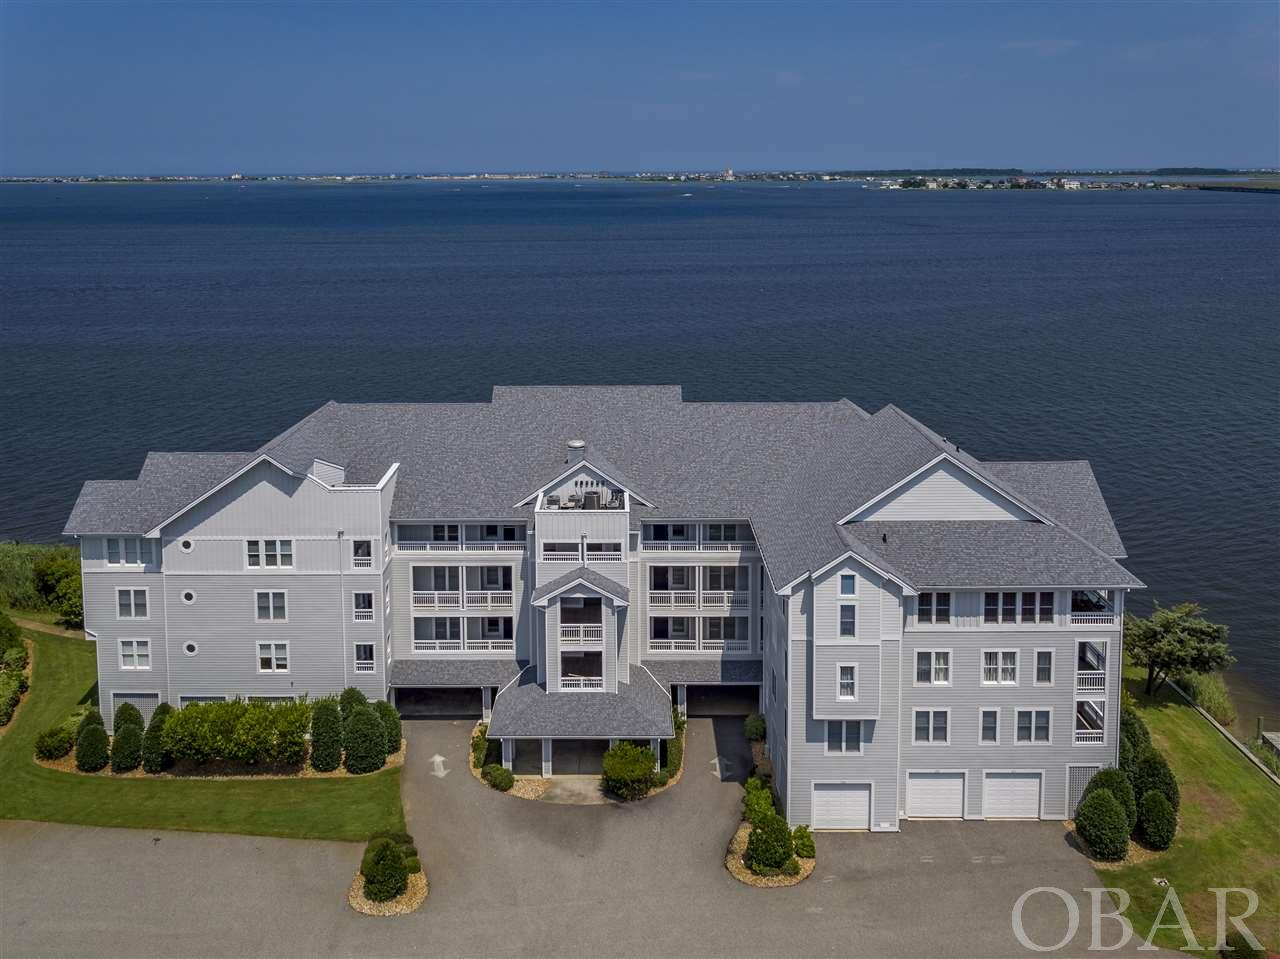 1312 Ballast Point Drive, Manteo, NC 27954, 4 Bedrooms Bedrooms, ,3 BathroomsBathrooms,Residential,For sale,Ballast Point Drive,104809